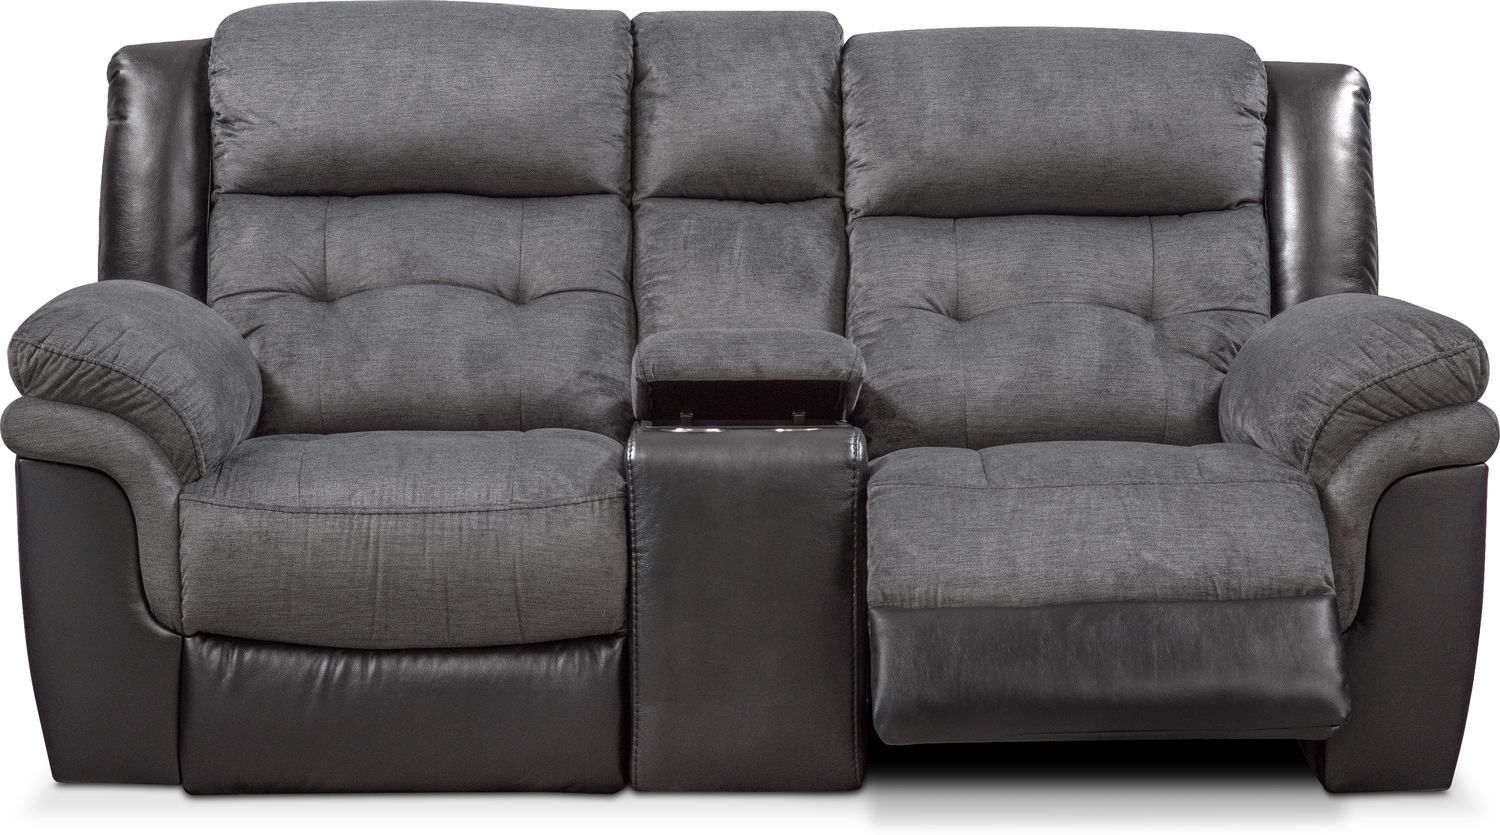 black reclining sofa with console es grave o aguda tacoma manual loveseat value city furniture click to change image